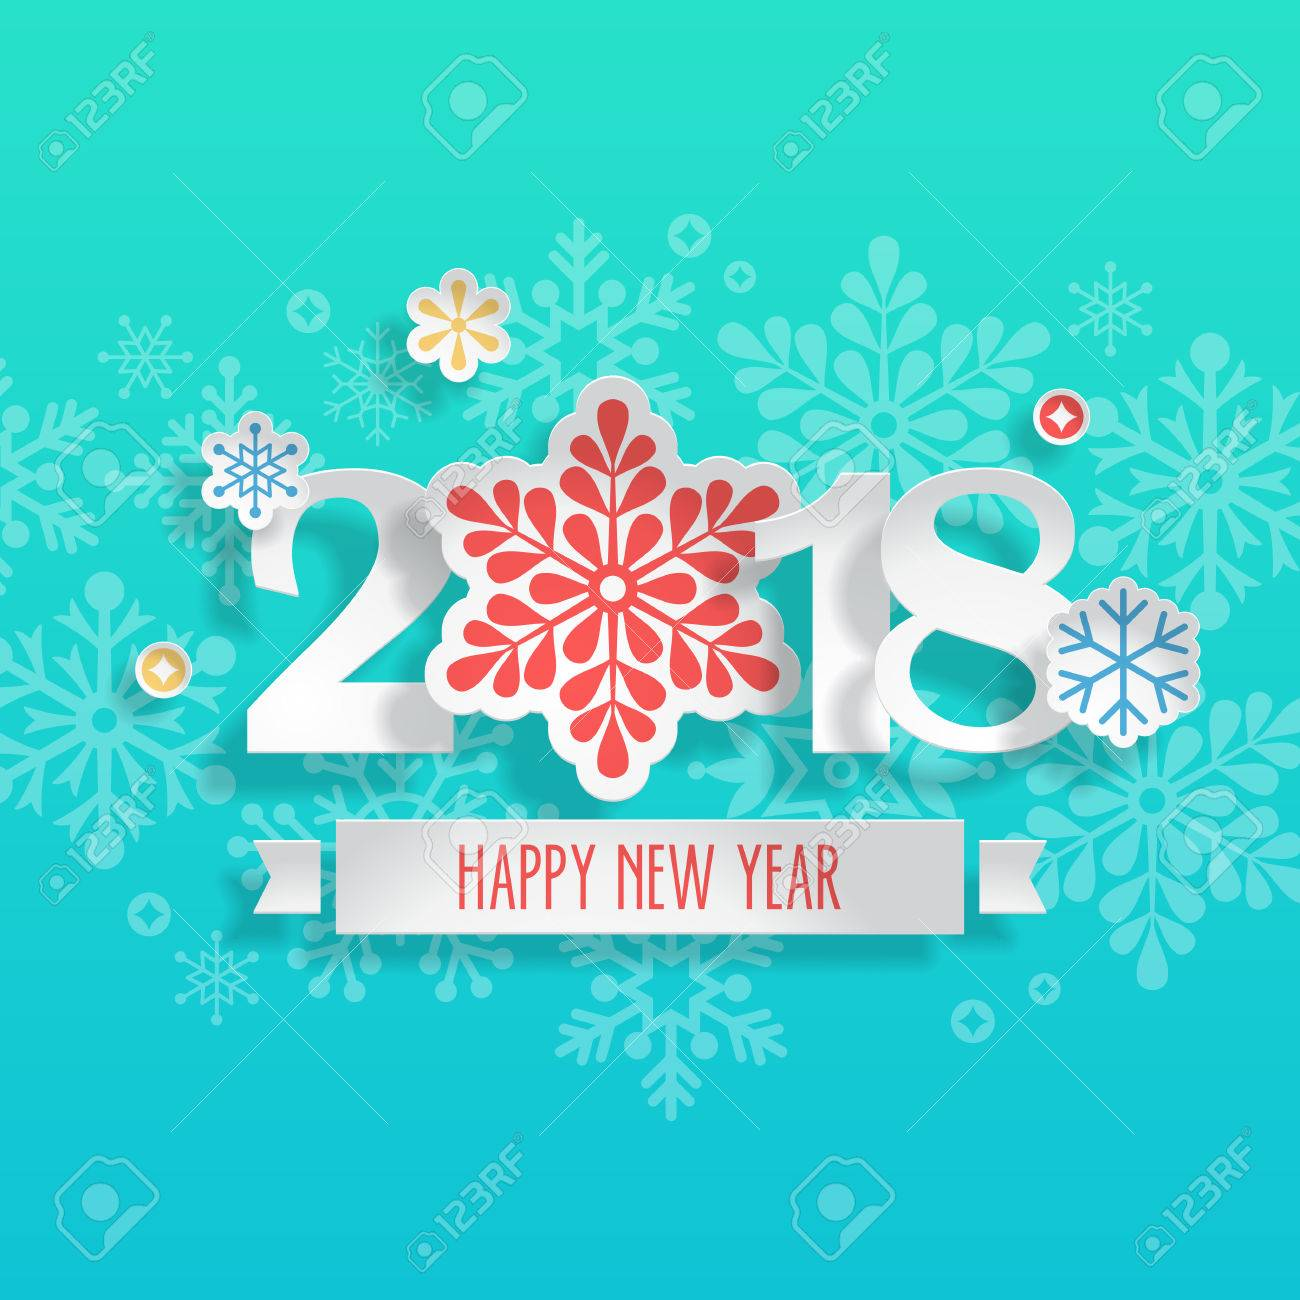 happy new year 2018 banner design with paper cut snowflakes stock vector 82177441